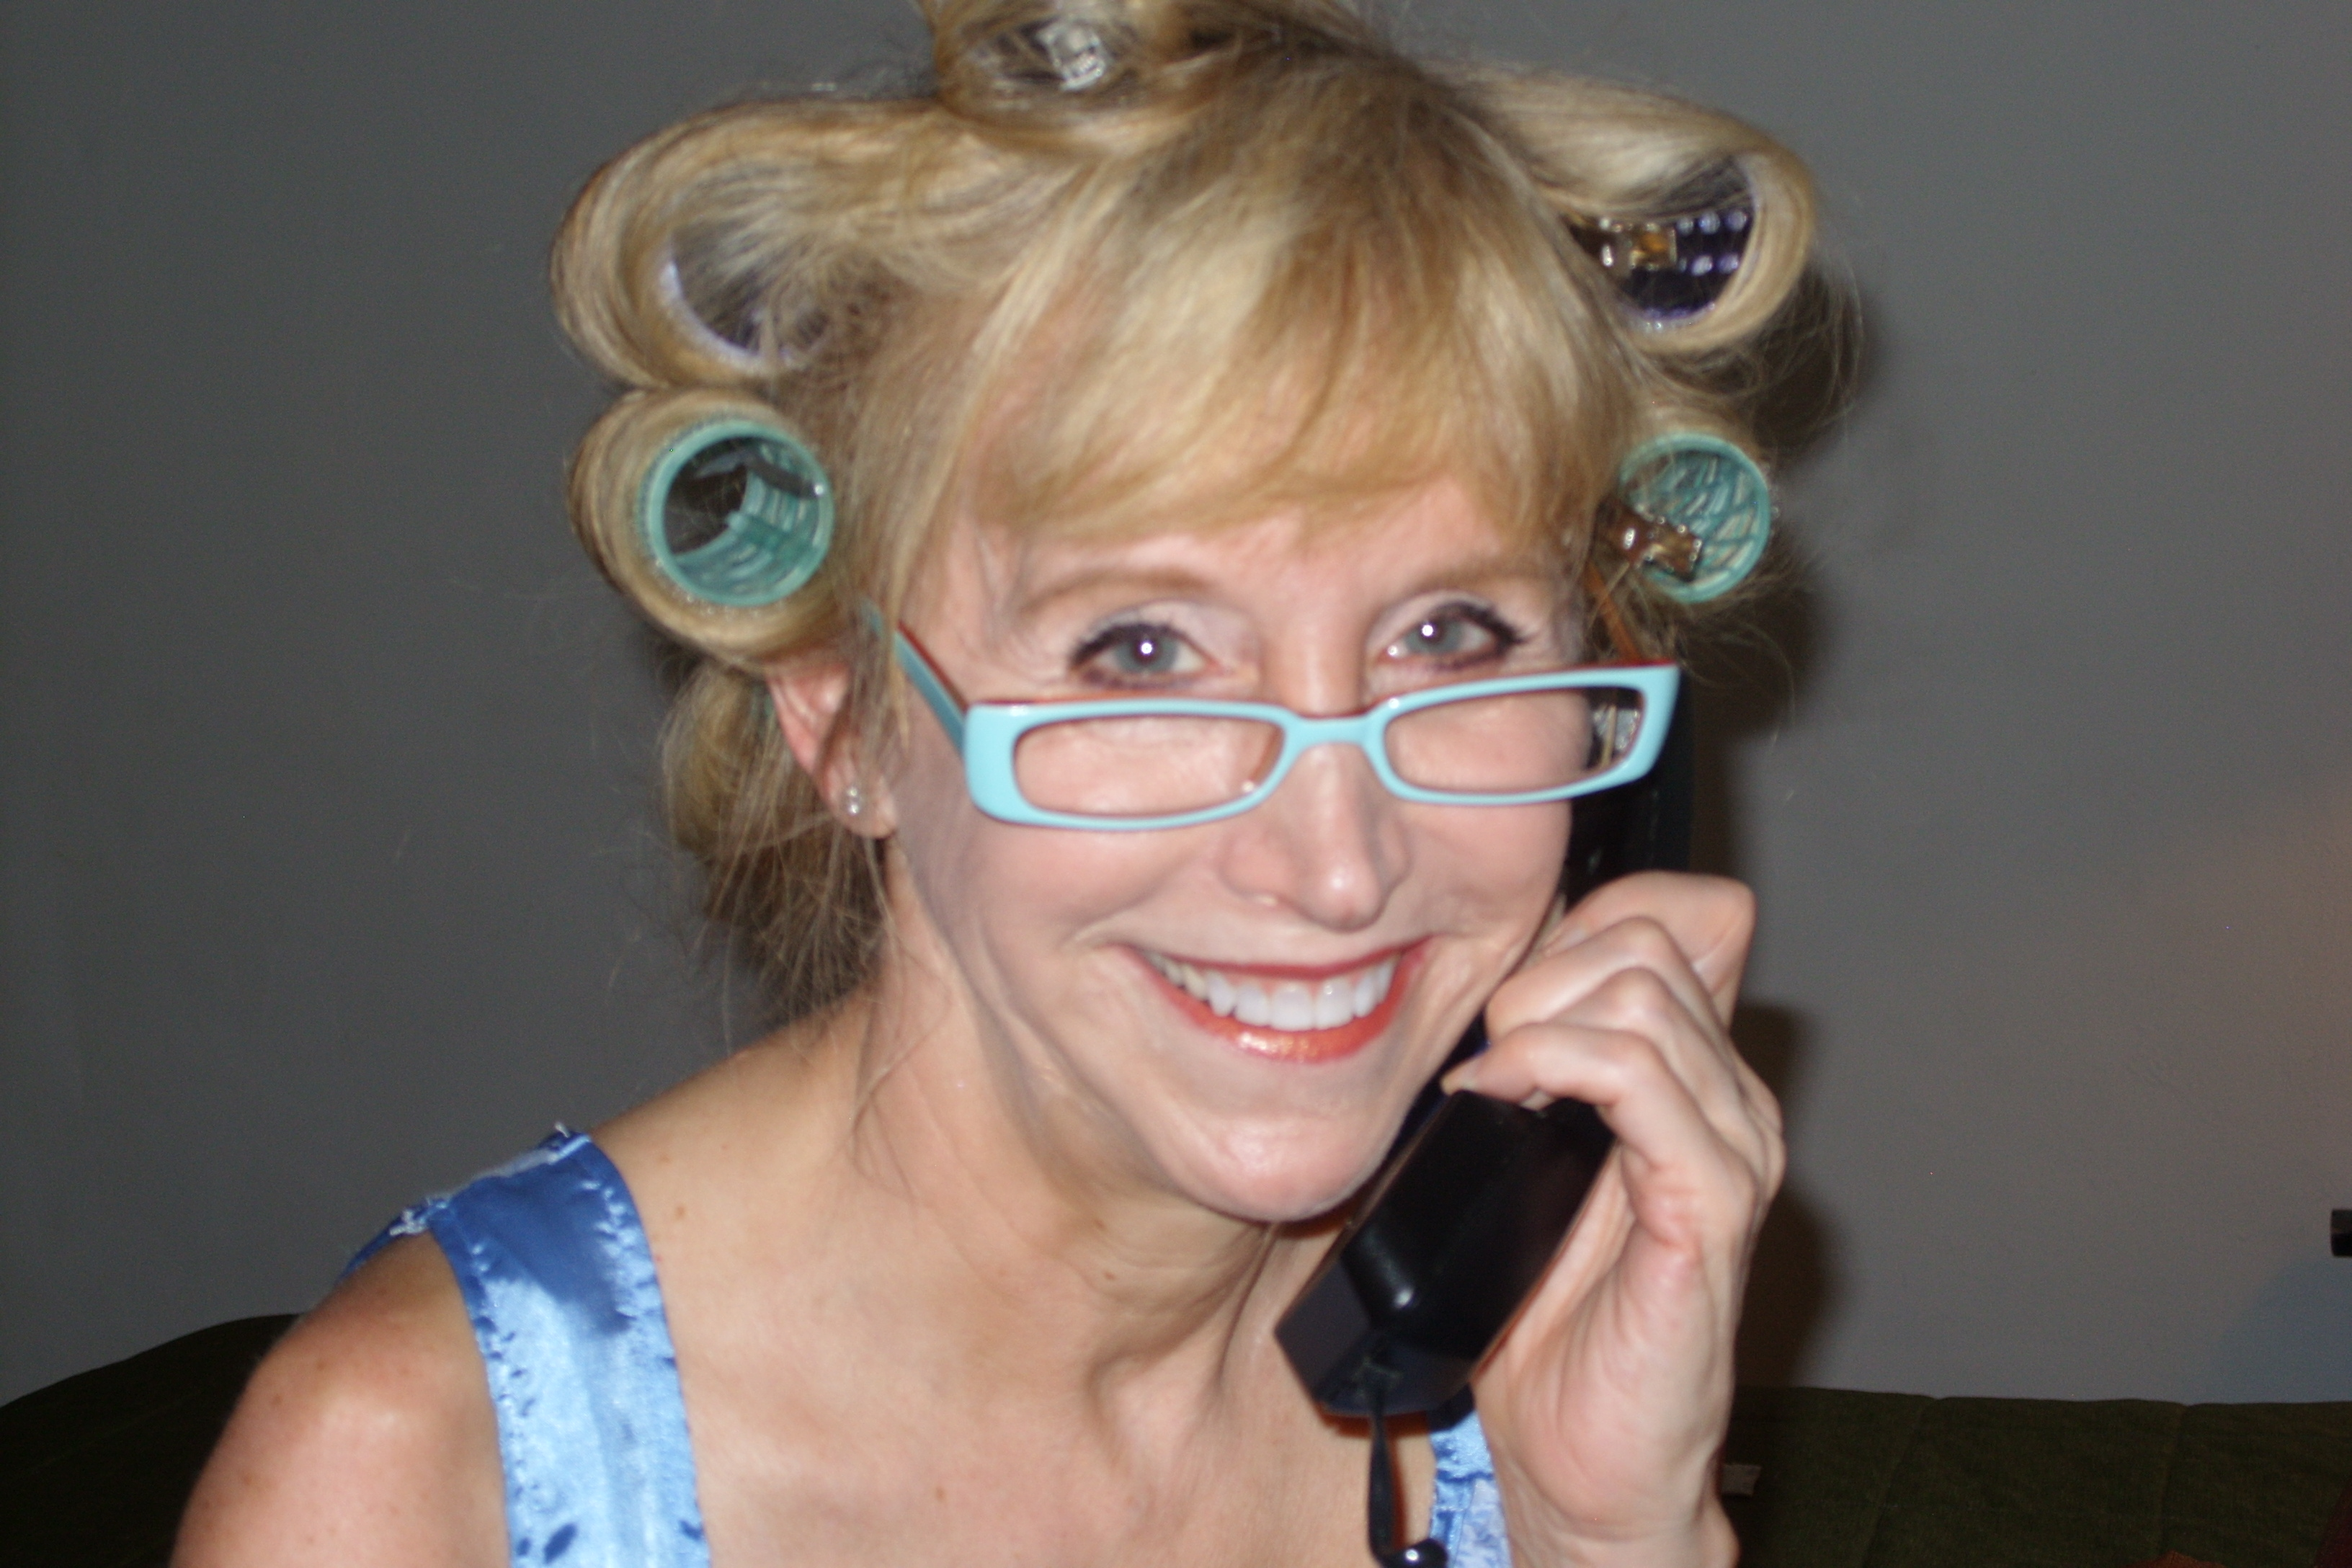 Blonde woman in hair curlers on telephone